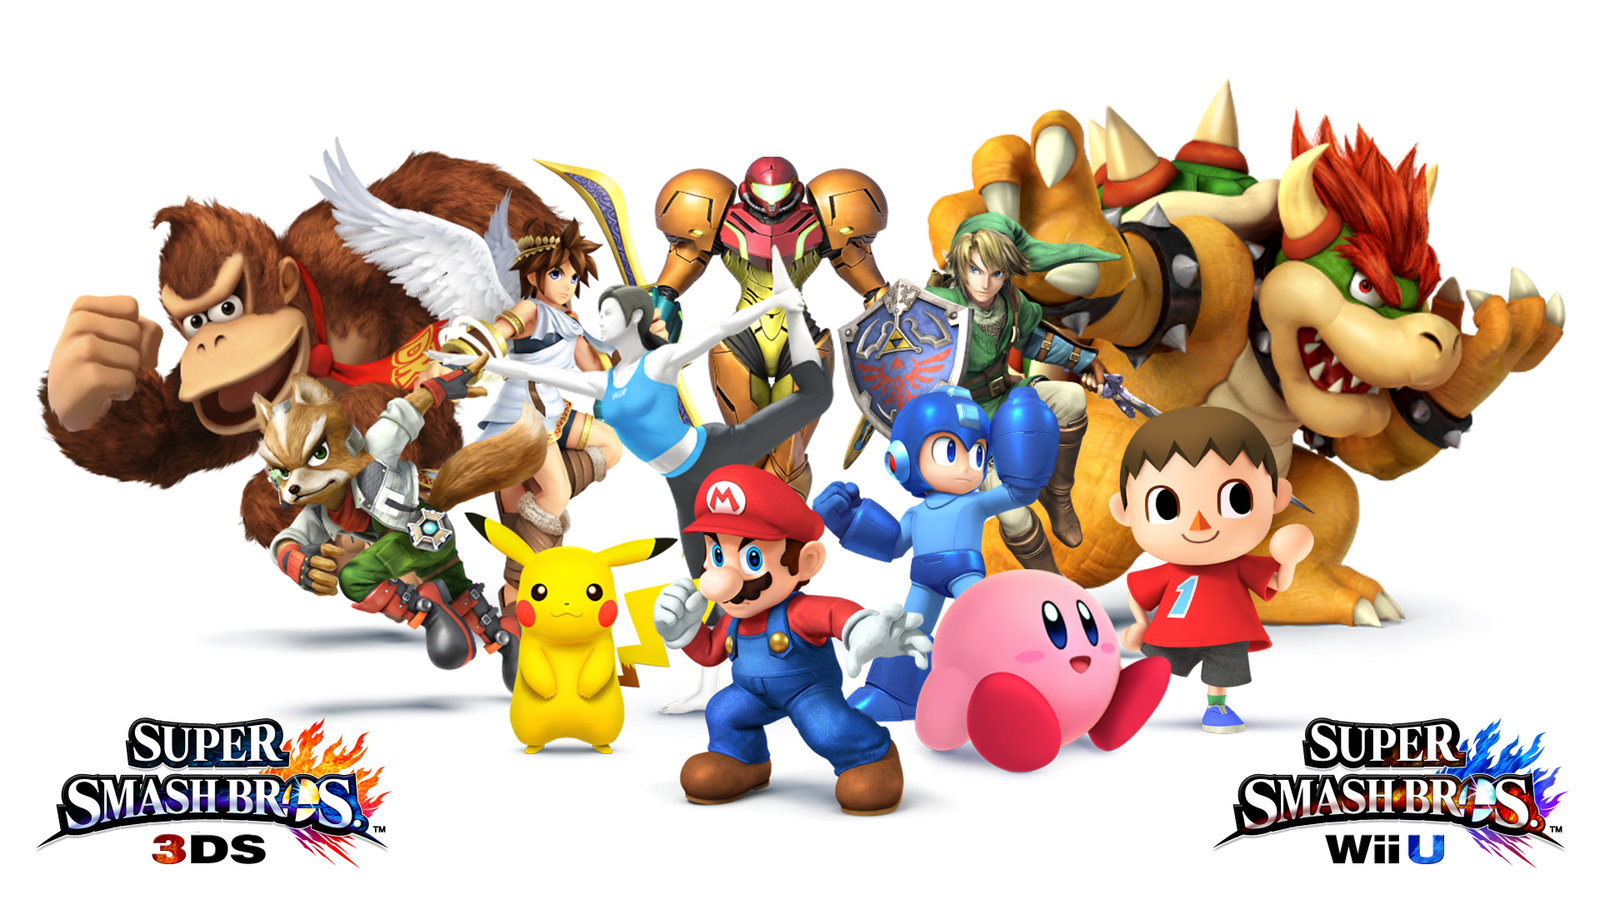 Rumor: Nintendo to use NFC in Smash Brothers Wii U